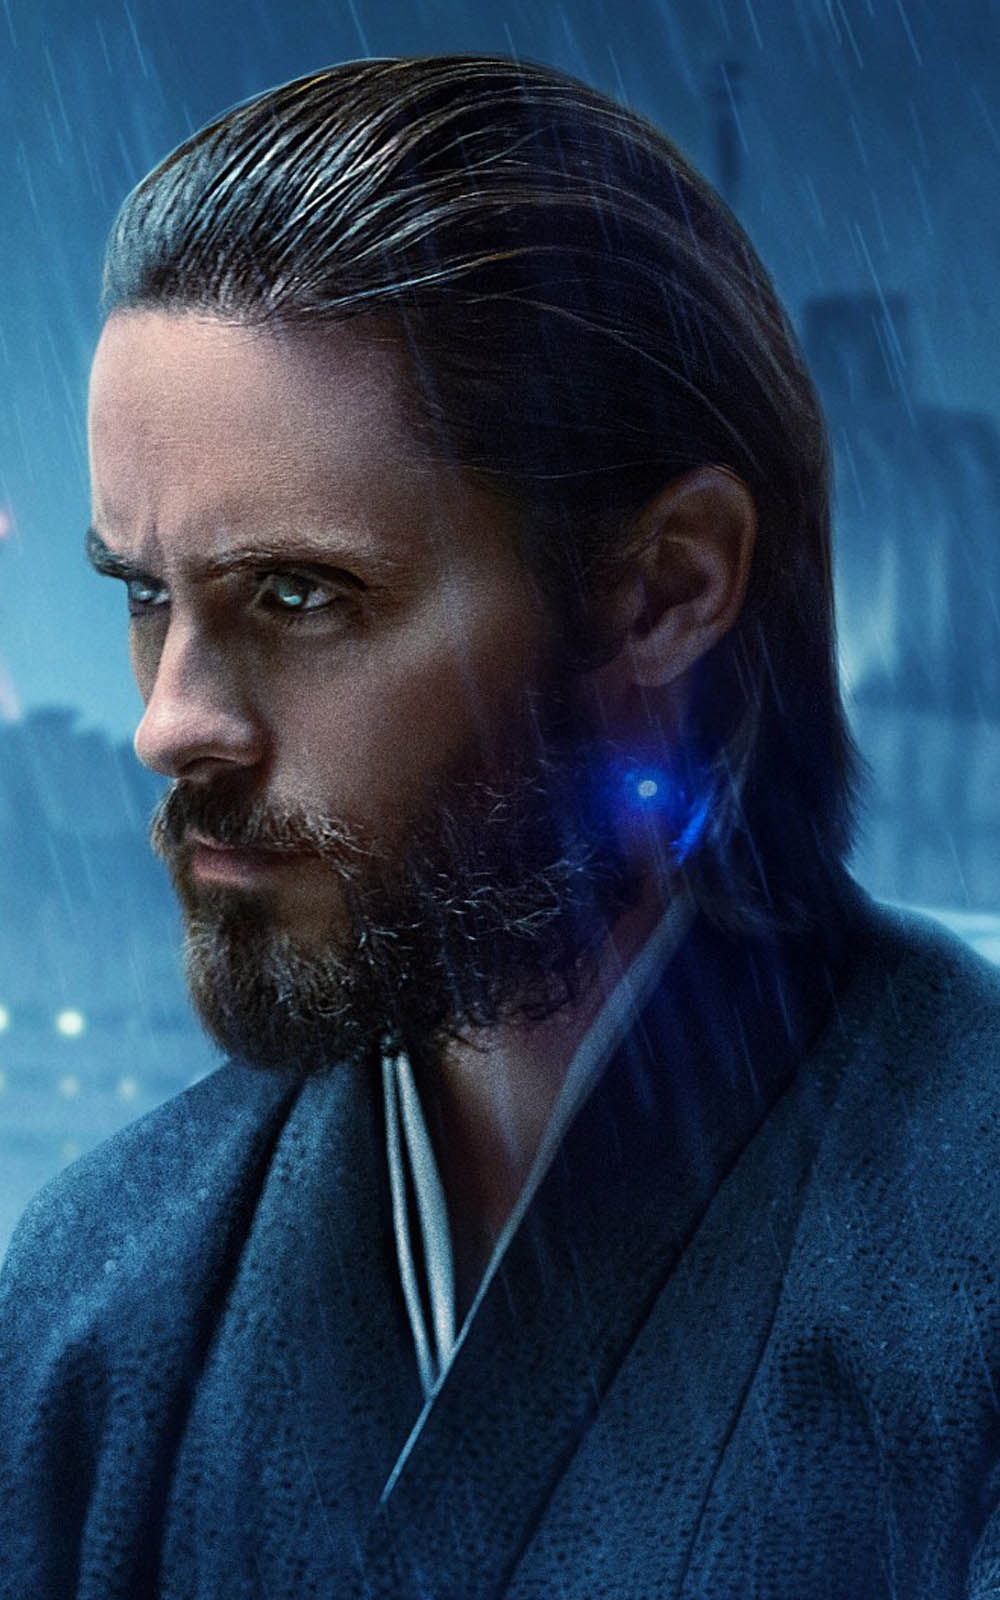 Legends Of The Fall Wallpaper Jared Leto In Blade Runner 2049 Download Free Pure 4k